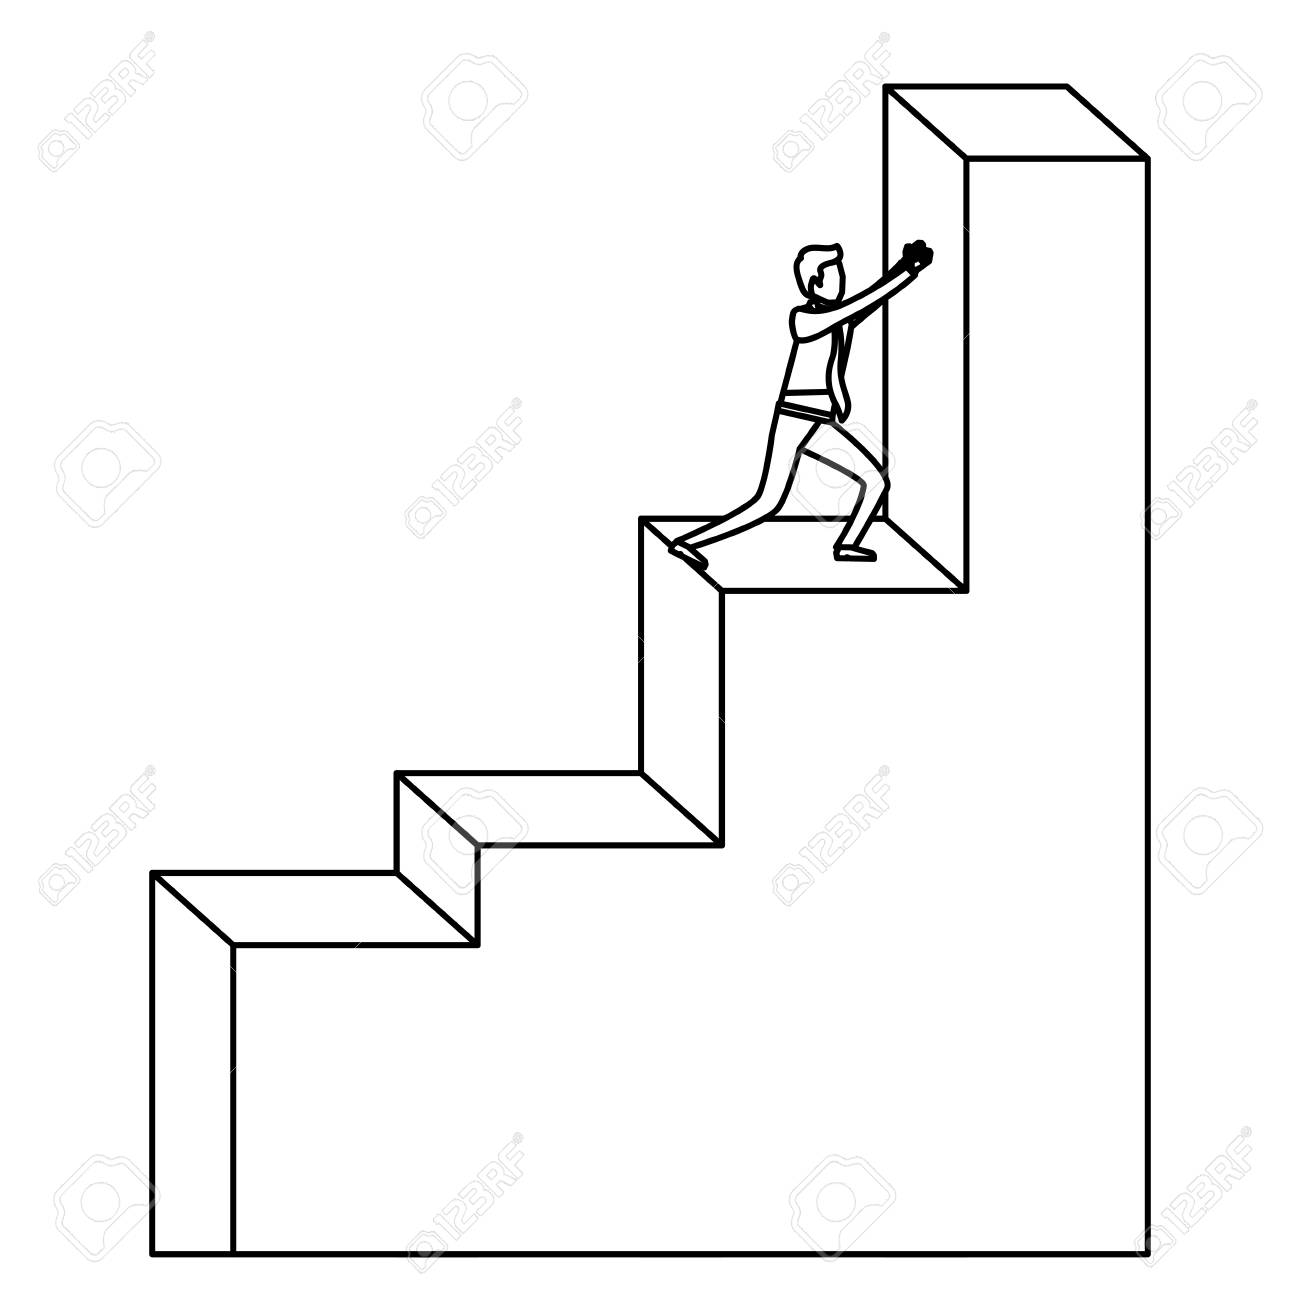 Businessman Pushing Stair Block Structure Sketch Silhouette In White  Background Vector Illustration Stock Vector   85056401